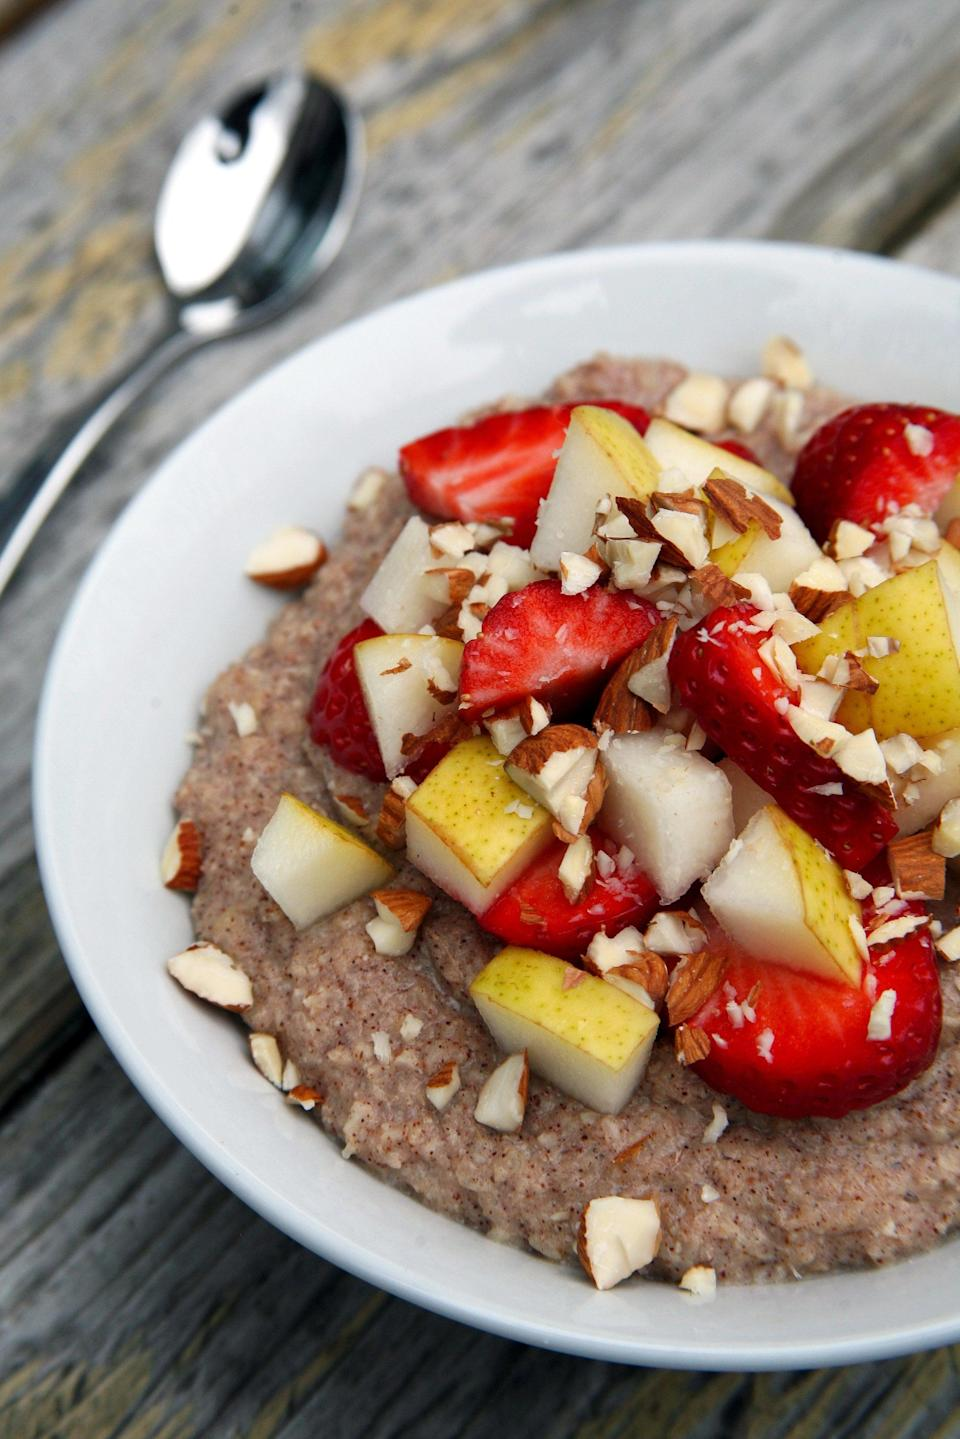 "<p>If you love oatmeal, you've got to try this version made with cauliflower. Sounds weird, but once it's cooked and flavored, it tastes remarkably like oatmeal - honest! This bowl is topped with fresh strawberries, pears, and chopped raw almonds.</p> <p><strong>Calories:</strong> 281<br> <strong>Protein:</strong> 13.4 grams</p> <p><strong>Get the recipe:</strong> <a href=""https://www.popsugar.com/fitness/Cauliflower-Porridge-40585823"" class=""link rapid-noclick-resp"" rel=""nofollow noopener"" target=""_blank"" data-ylk=""slk:cauliflower porridge"">cauliflower porridge</a></p>"